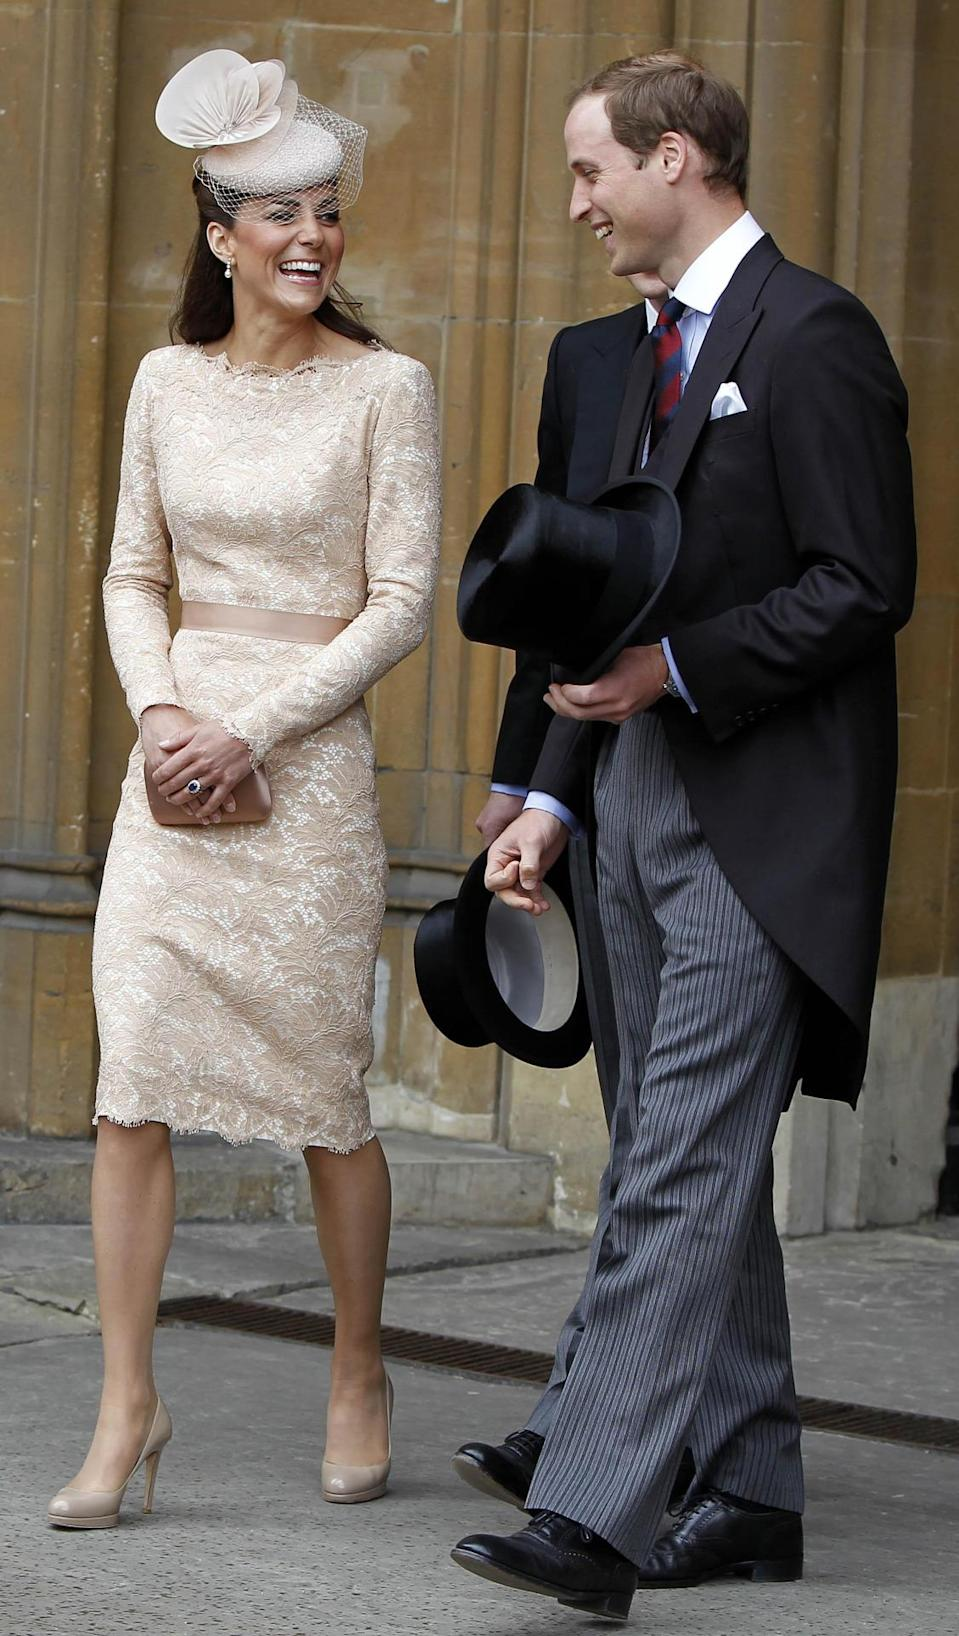 <p>The final Diamond Jubilee celebrations saw Kate in a lacy Alexander McQueen look worn with a nude hat by Jane Taylor. The dress matched the Duchess's Prada clutch perfectly.</p><p><i>[Photo: PA]</i></p>